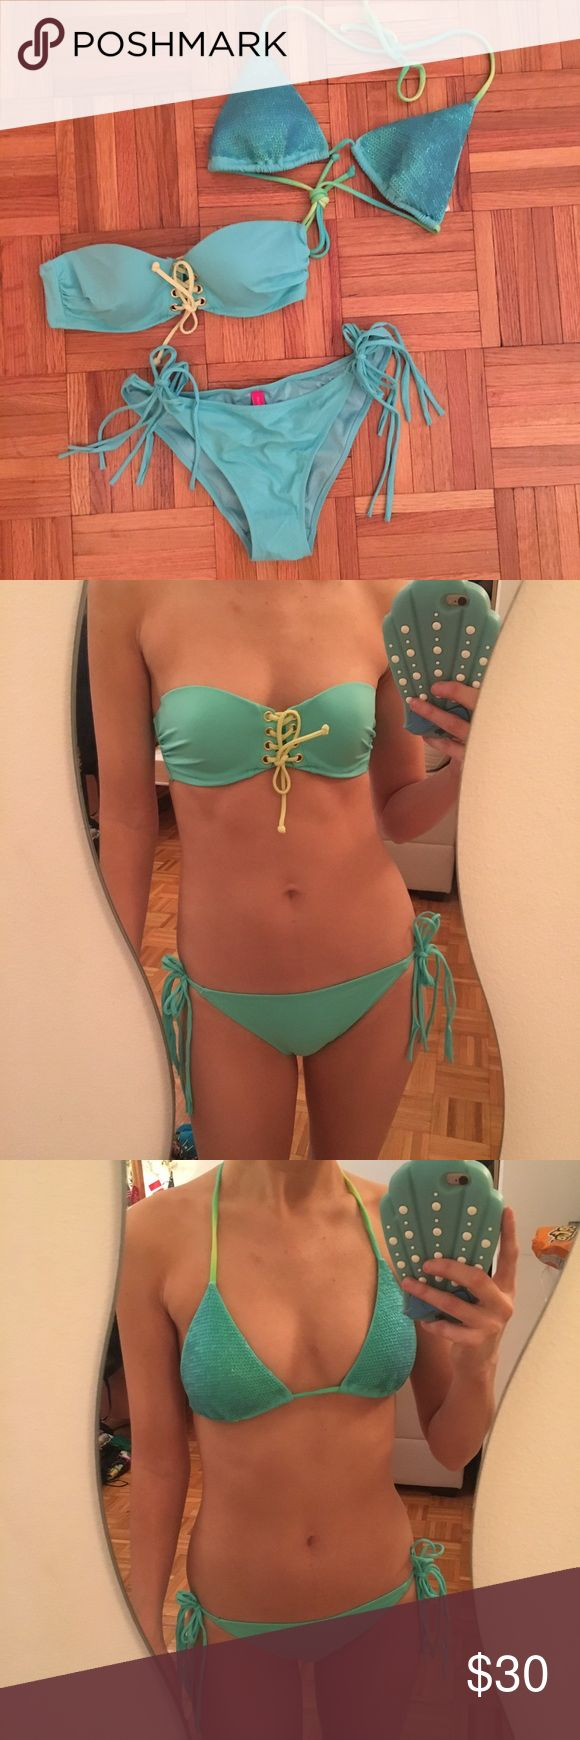 3 piece bikini set- Victoria's Secret- small 3 piece mix and match bikini set- Victoria's Secret- all pieces size small. Embellished triangle top with sequins, side tie string bottoms, and bandeau with lace up detail at center front. New without tags! Victoria's Secret Swim Bikinis